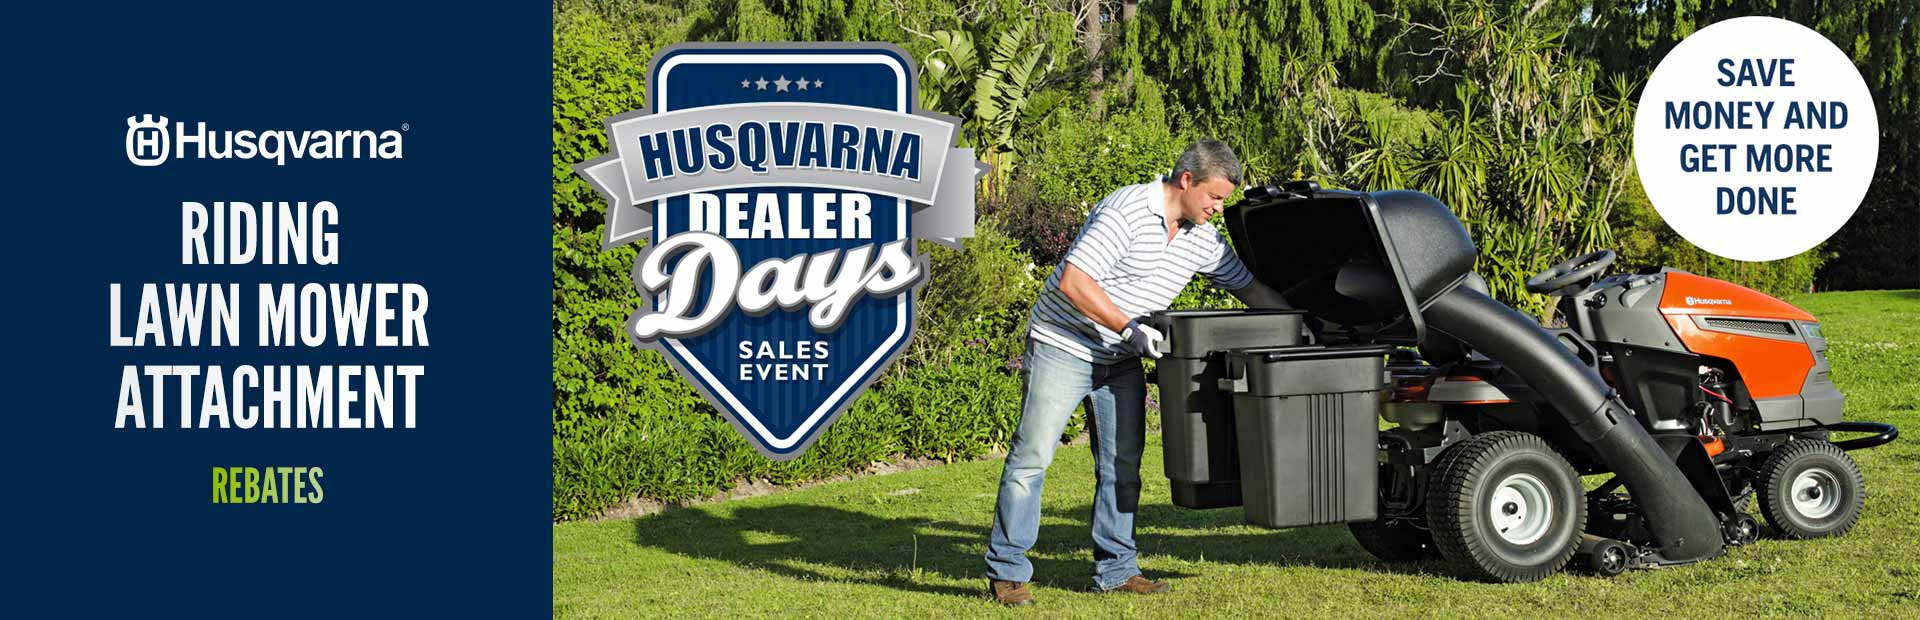 Husqvarna: Riding Lawn Mower Attachment Rebates